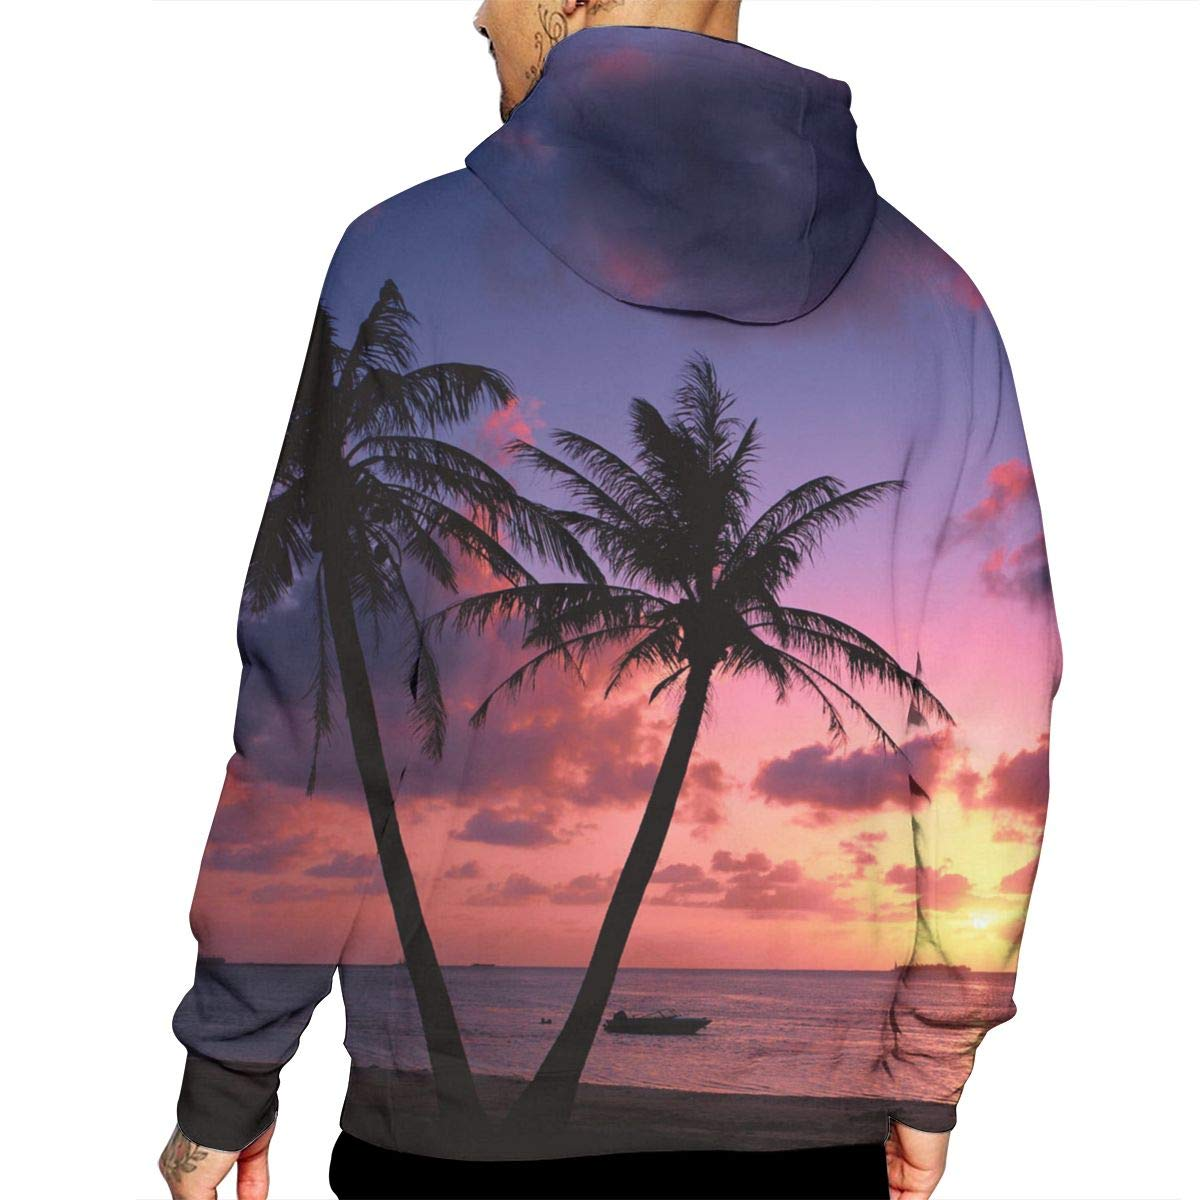 Beautiful Summer Sunset Palm Tree Graphic T-Shirt Hooded with A Pocket Rope Hat Customization Fashion Novelty 3D Mens